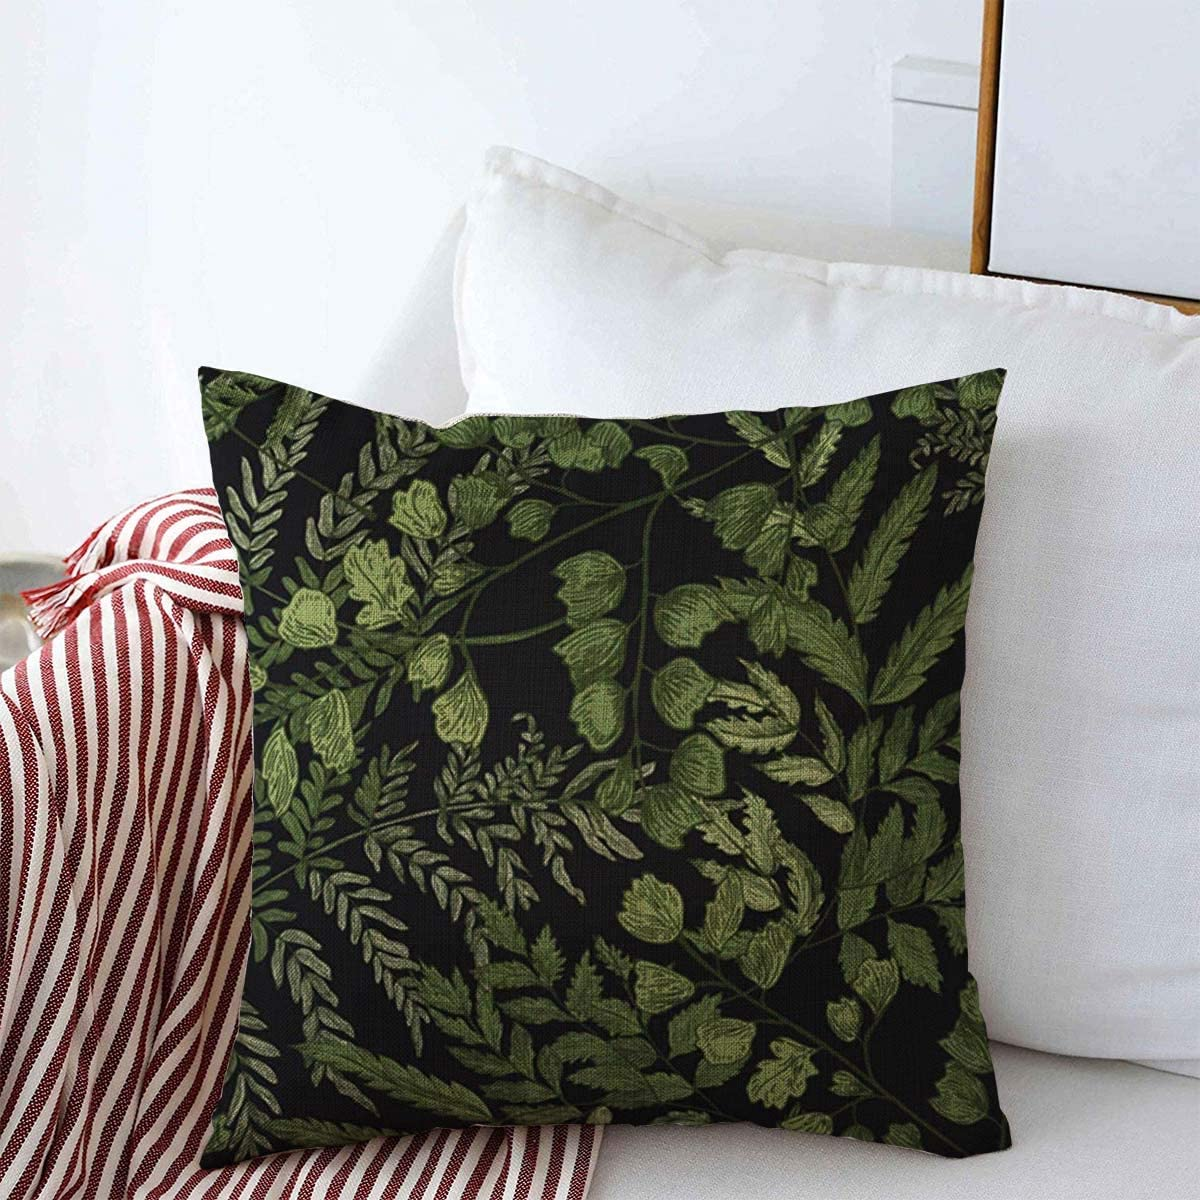 Starotor Throw Pillow Covers 18 X 18 Leaves Botanical Natural Ferns Green Herbaceous Realistic Nature Plant Vintage Antique Botany Design Cushion Case Cotton Linen For Winter Home Decoration Home Kitchen